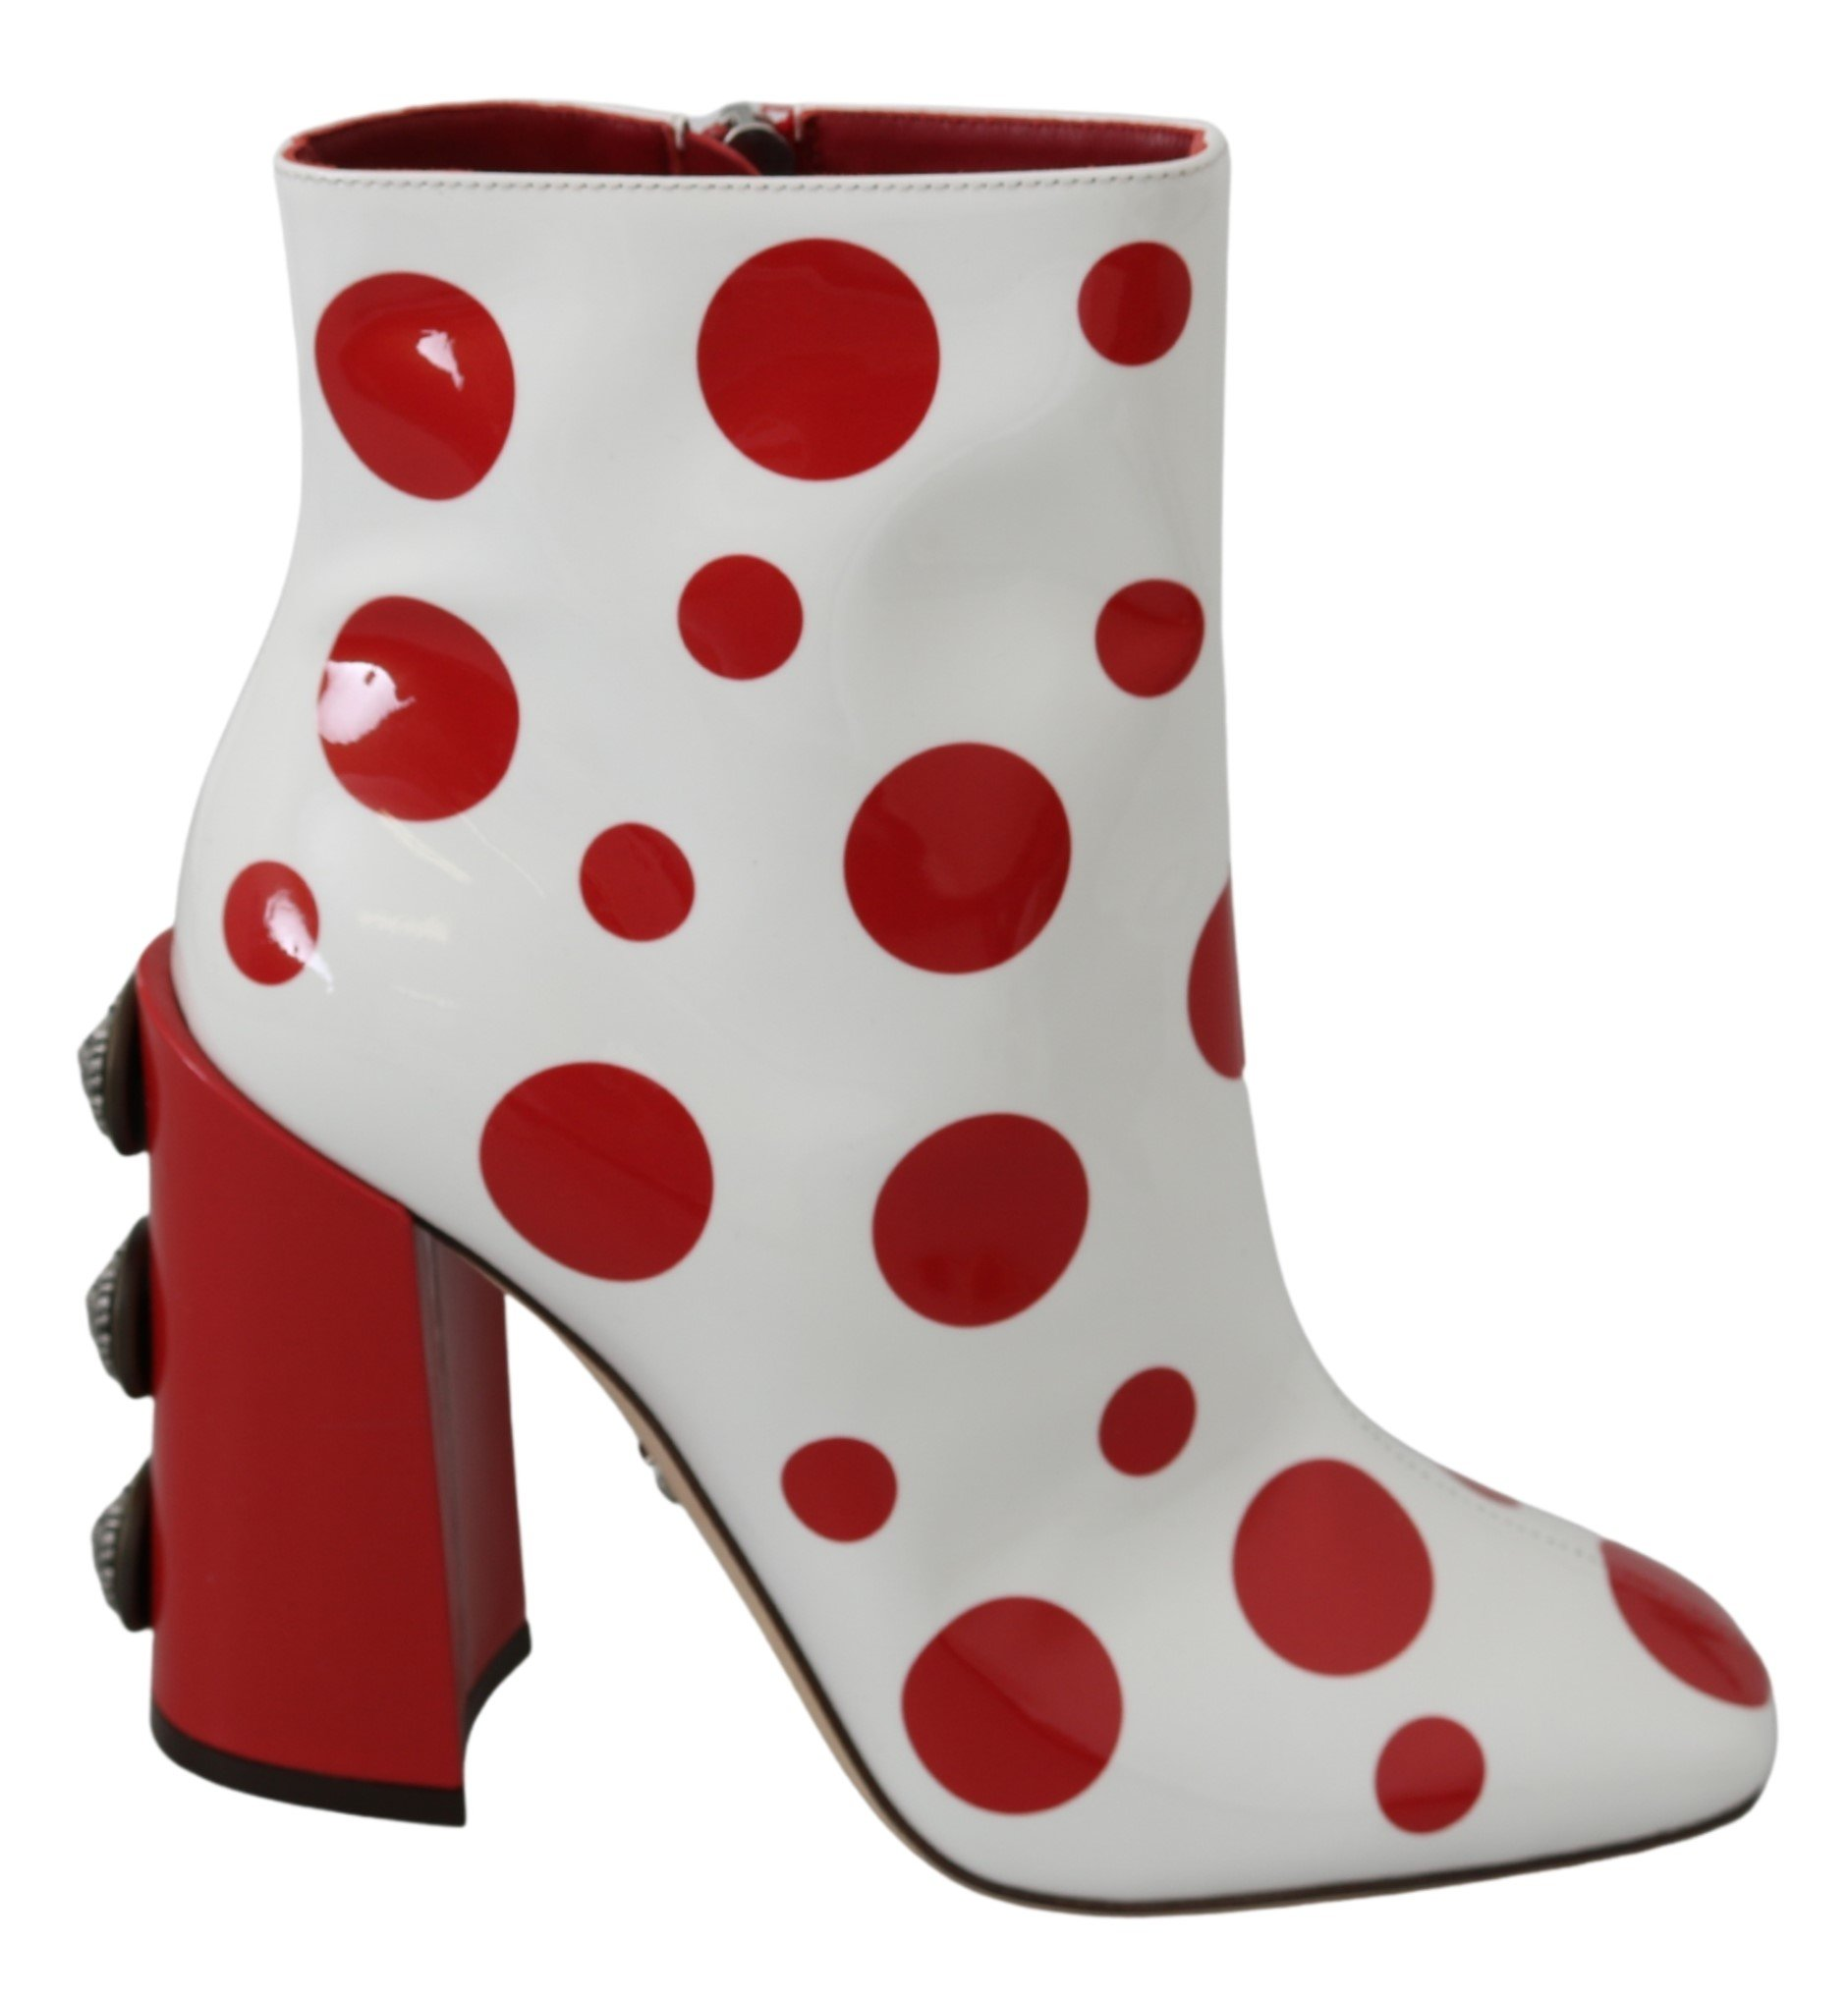 White Red Polka Dots Ankle High Boots Shoes - EU39/US8.5